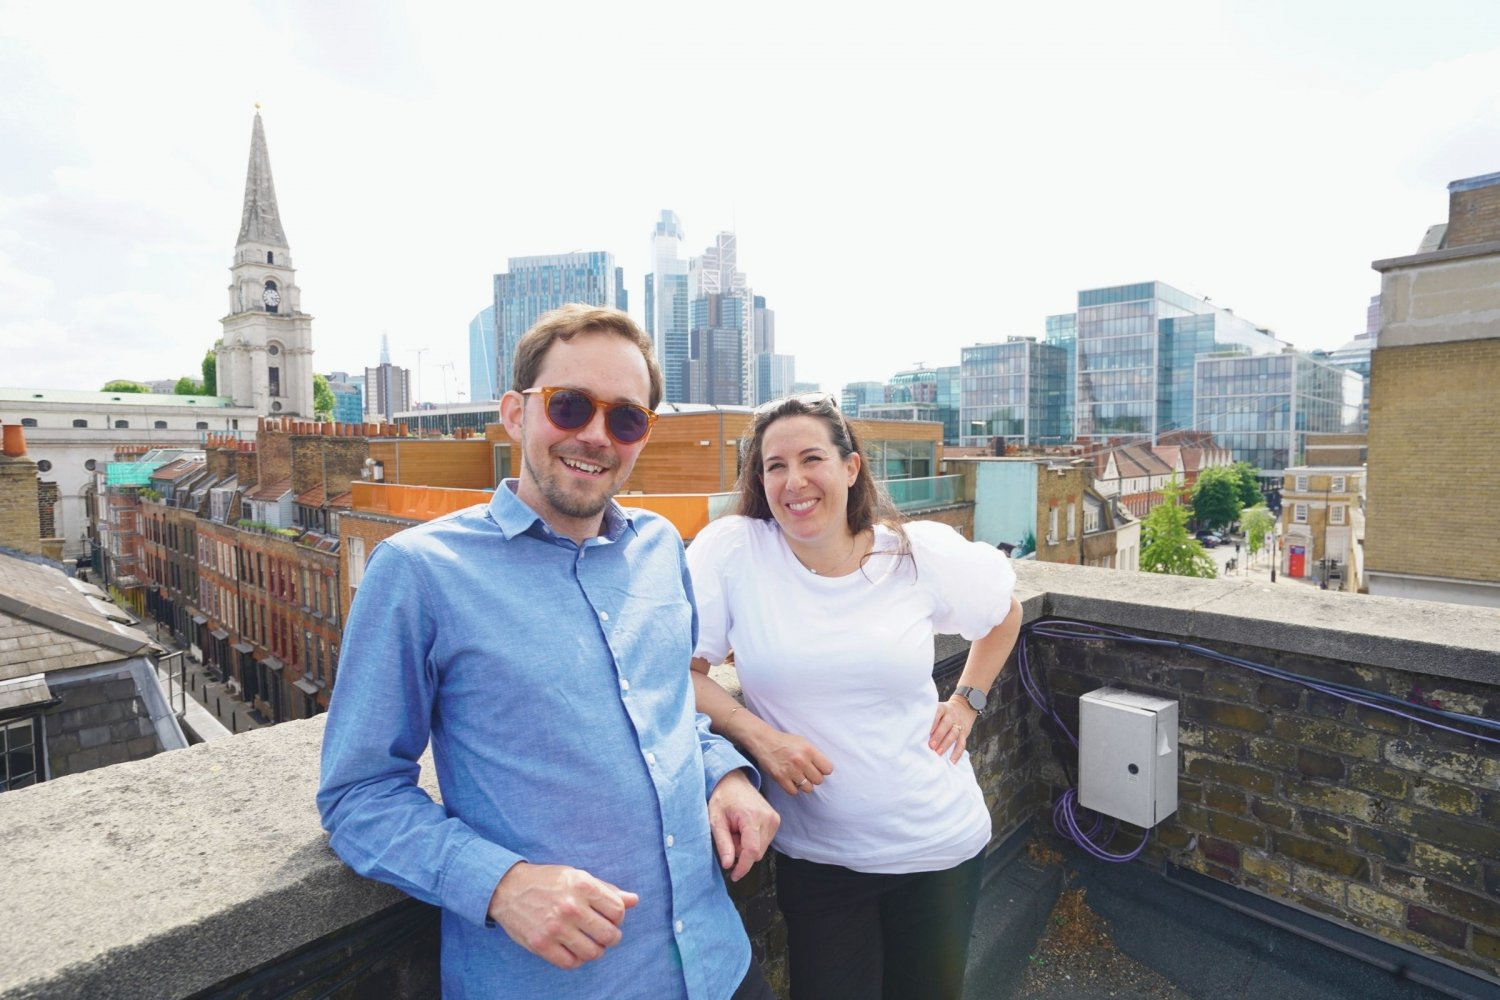 Frances and Simon standing on the rooftop